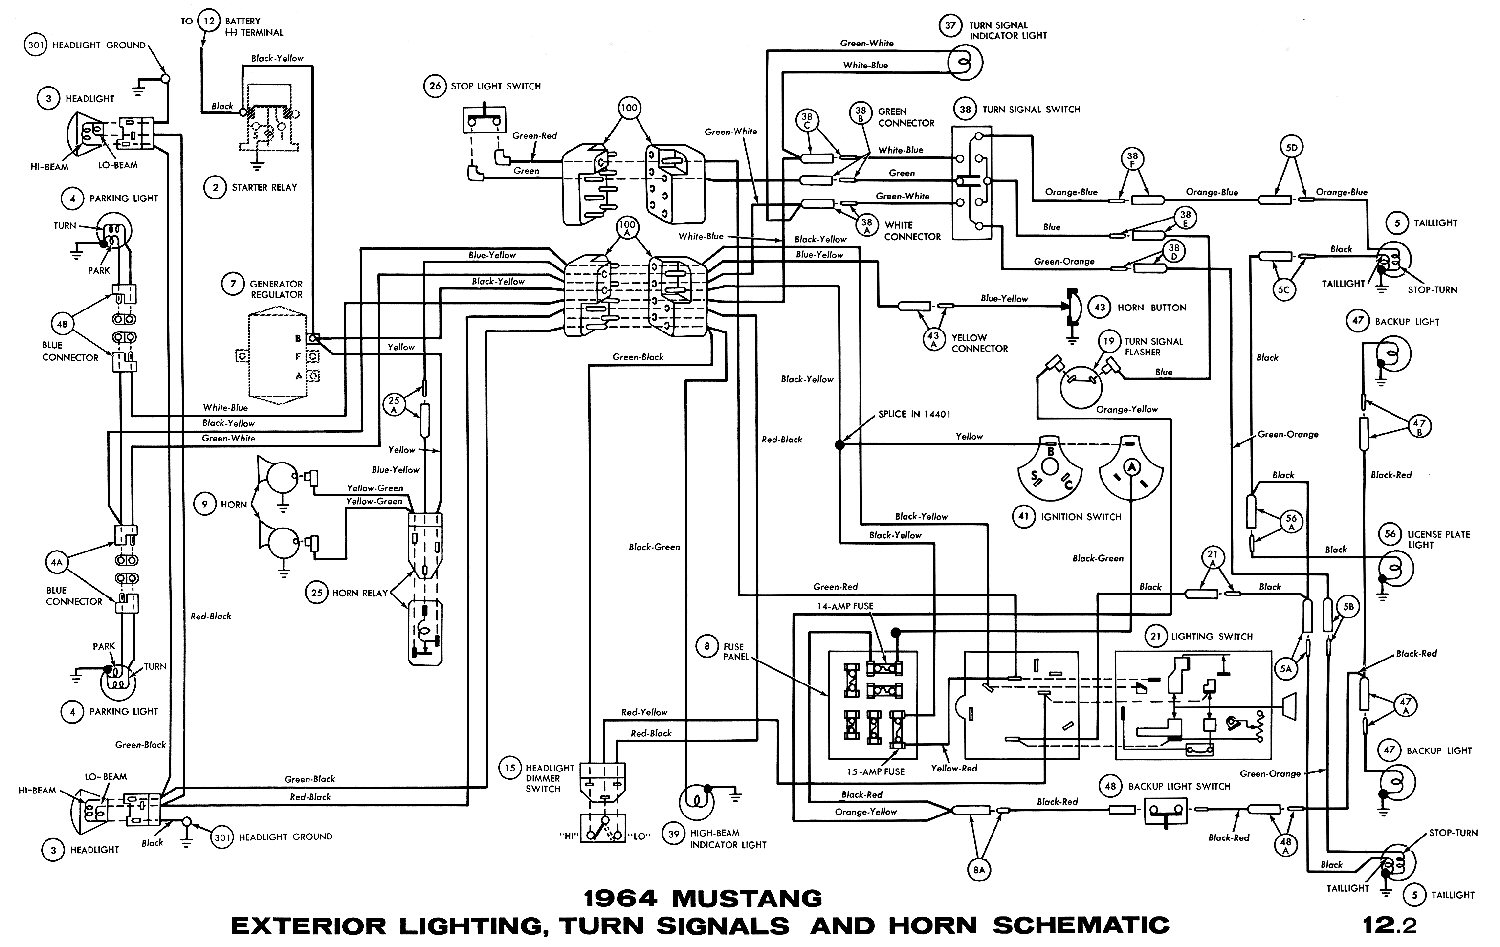 1964i 1964 mustang wiring diagrams average joe restoration 65 mustang ignition wiring diagram at mifinder.co